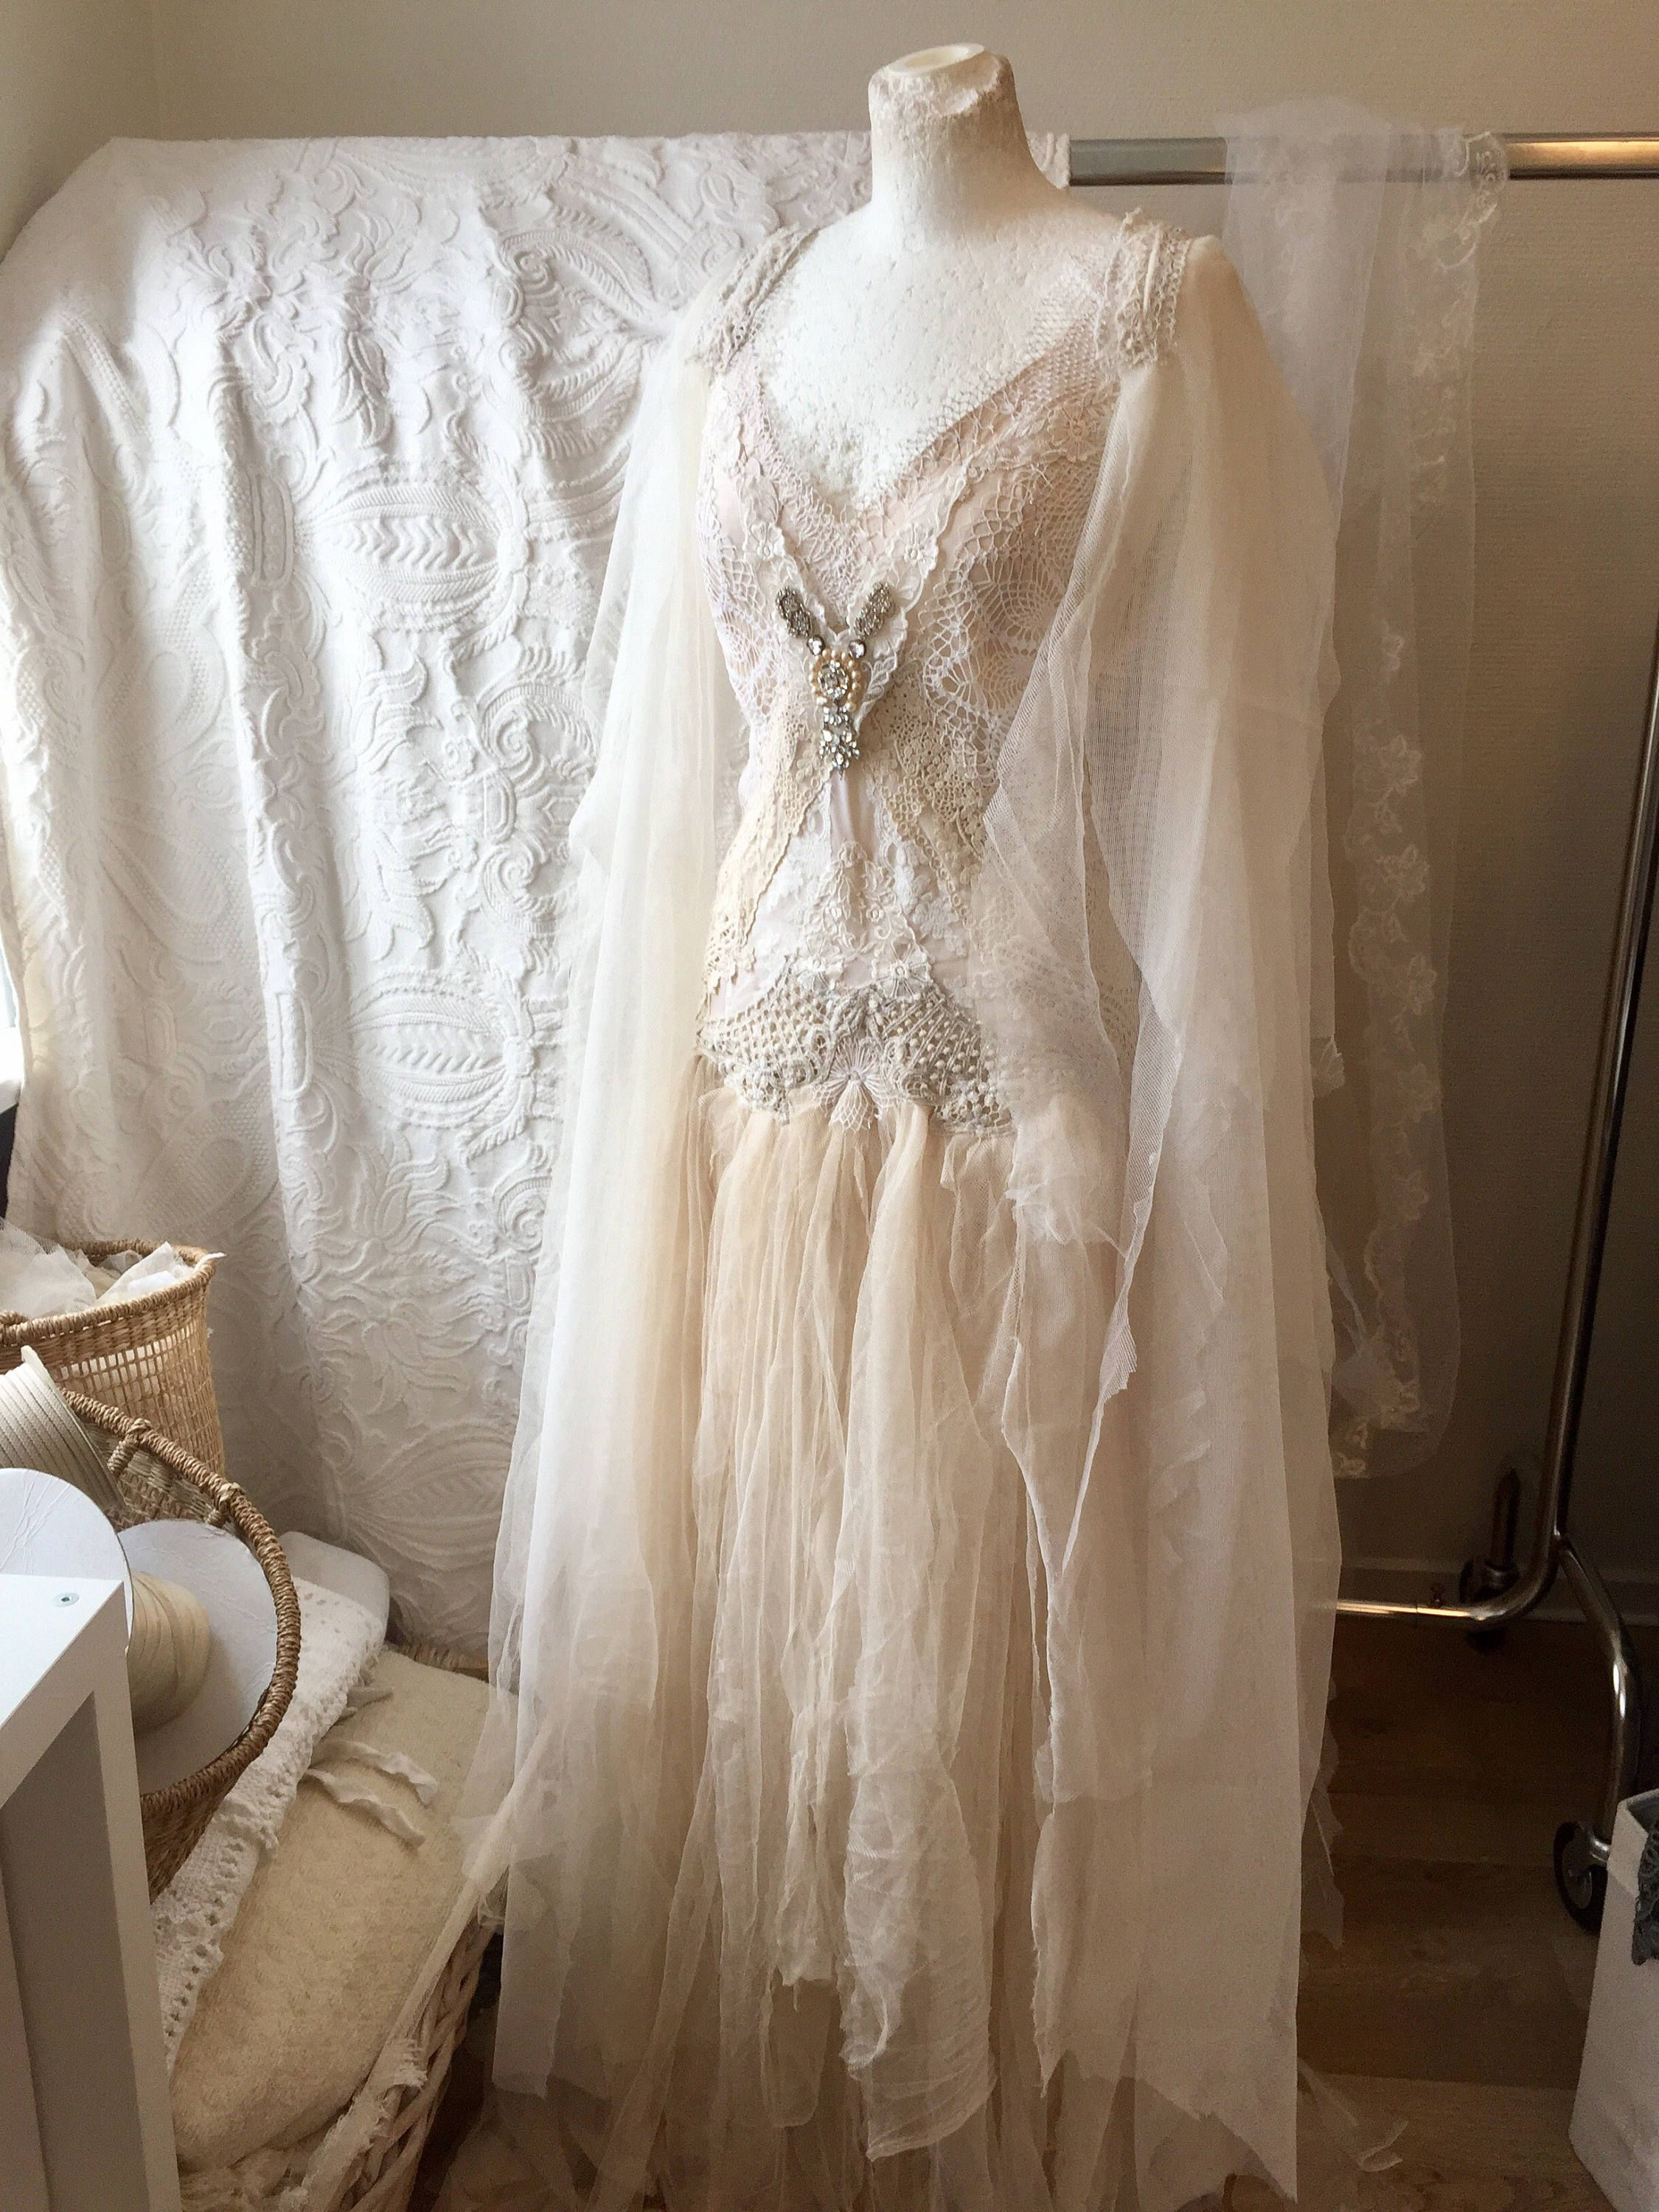 Boho wedding dress strong and femininfairy wedding dress boho